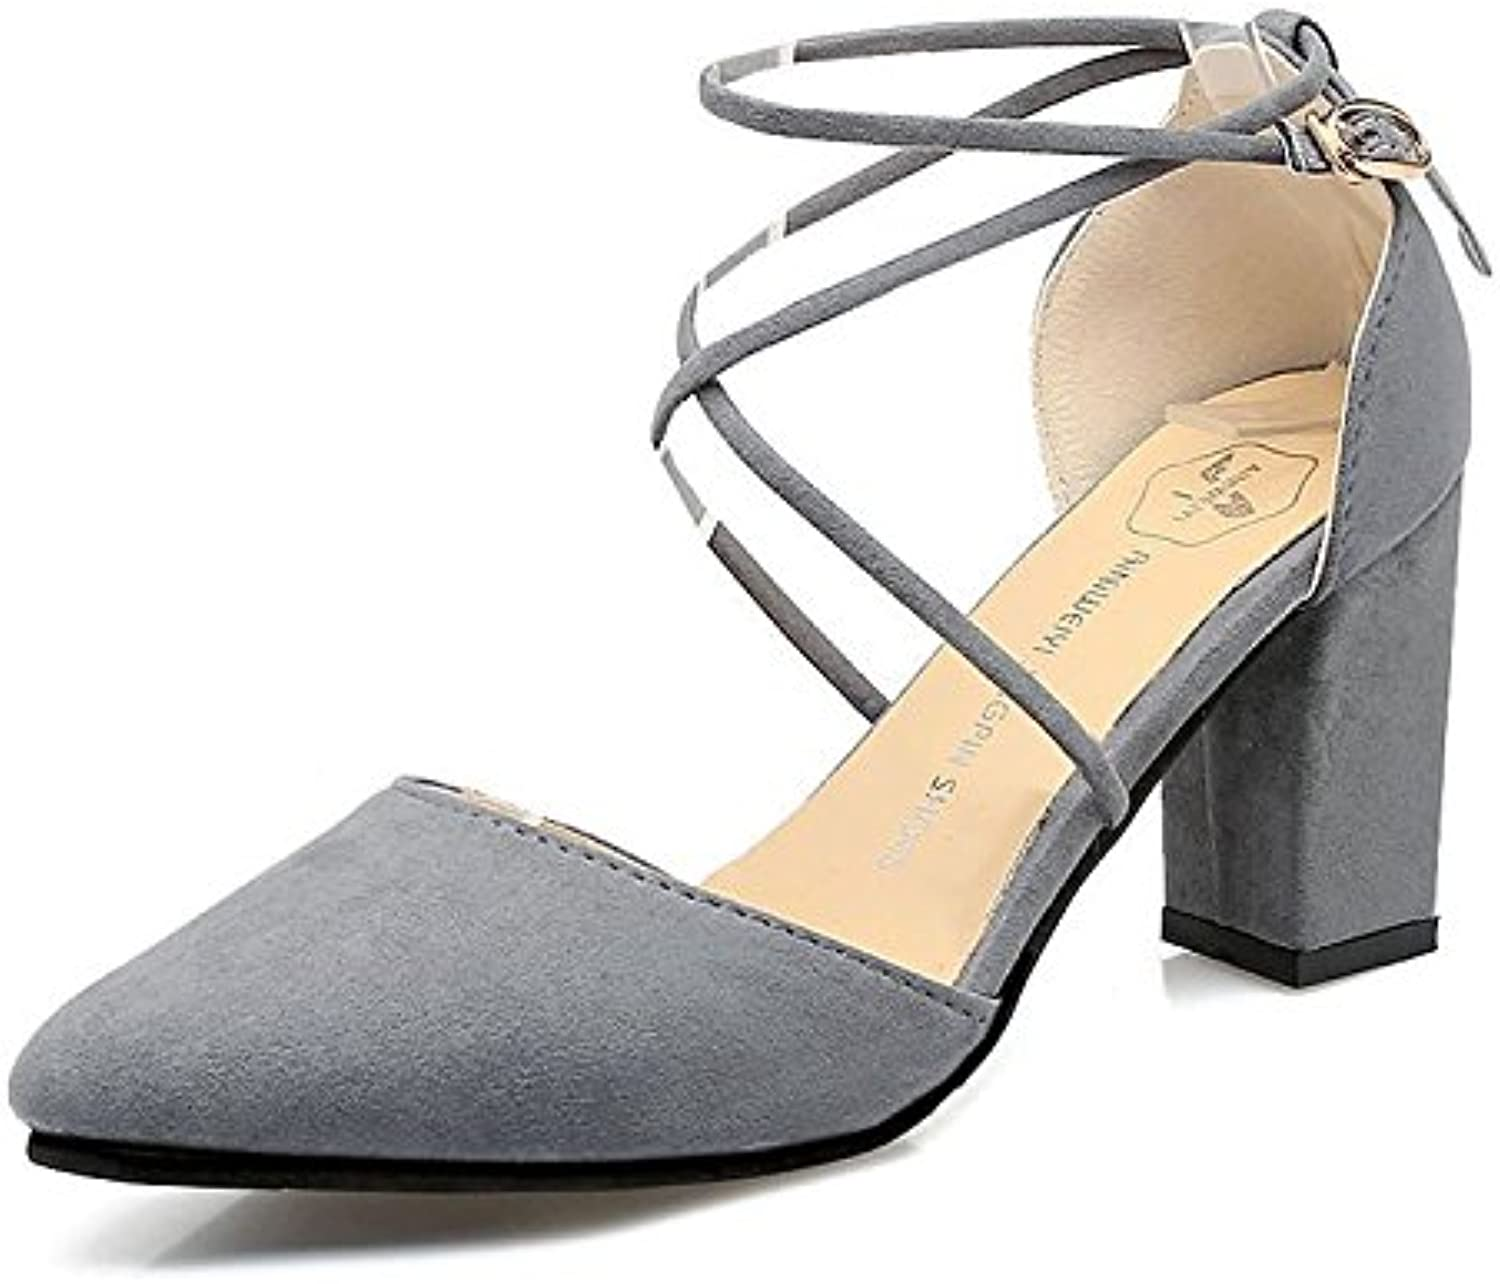 Fashionable high Heel Sandals, Summer, New Sharp Pointed, Thick and Comfortable Women's shoes.